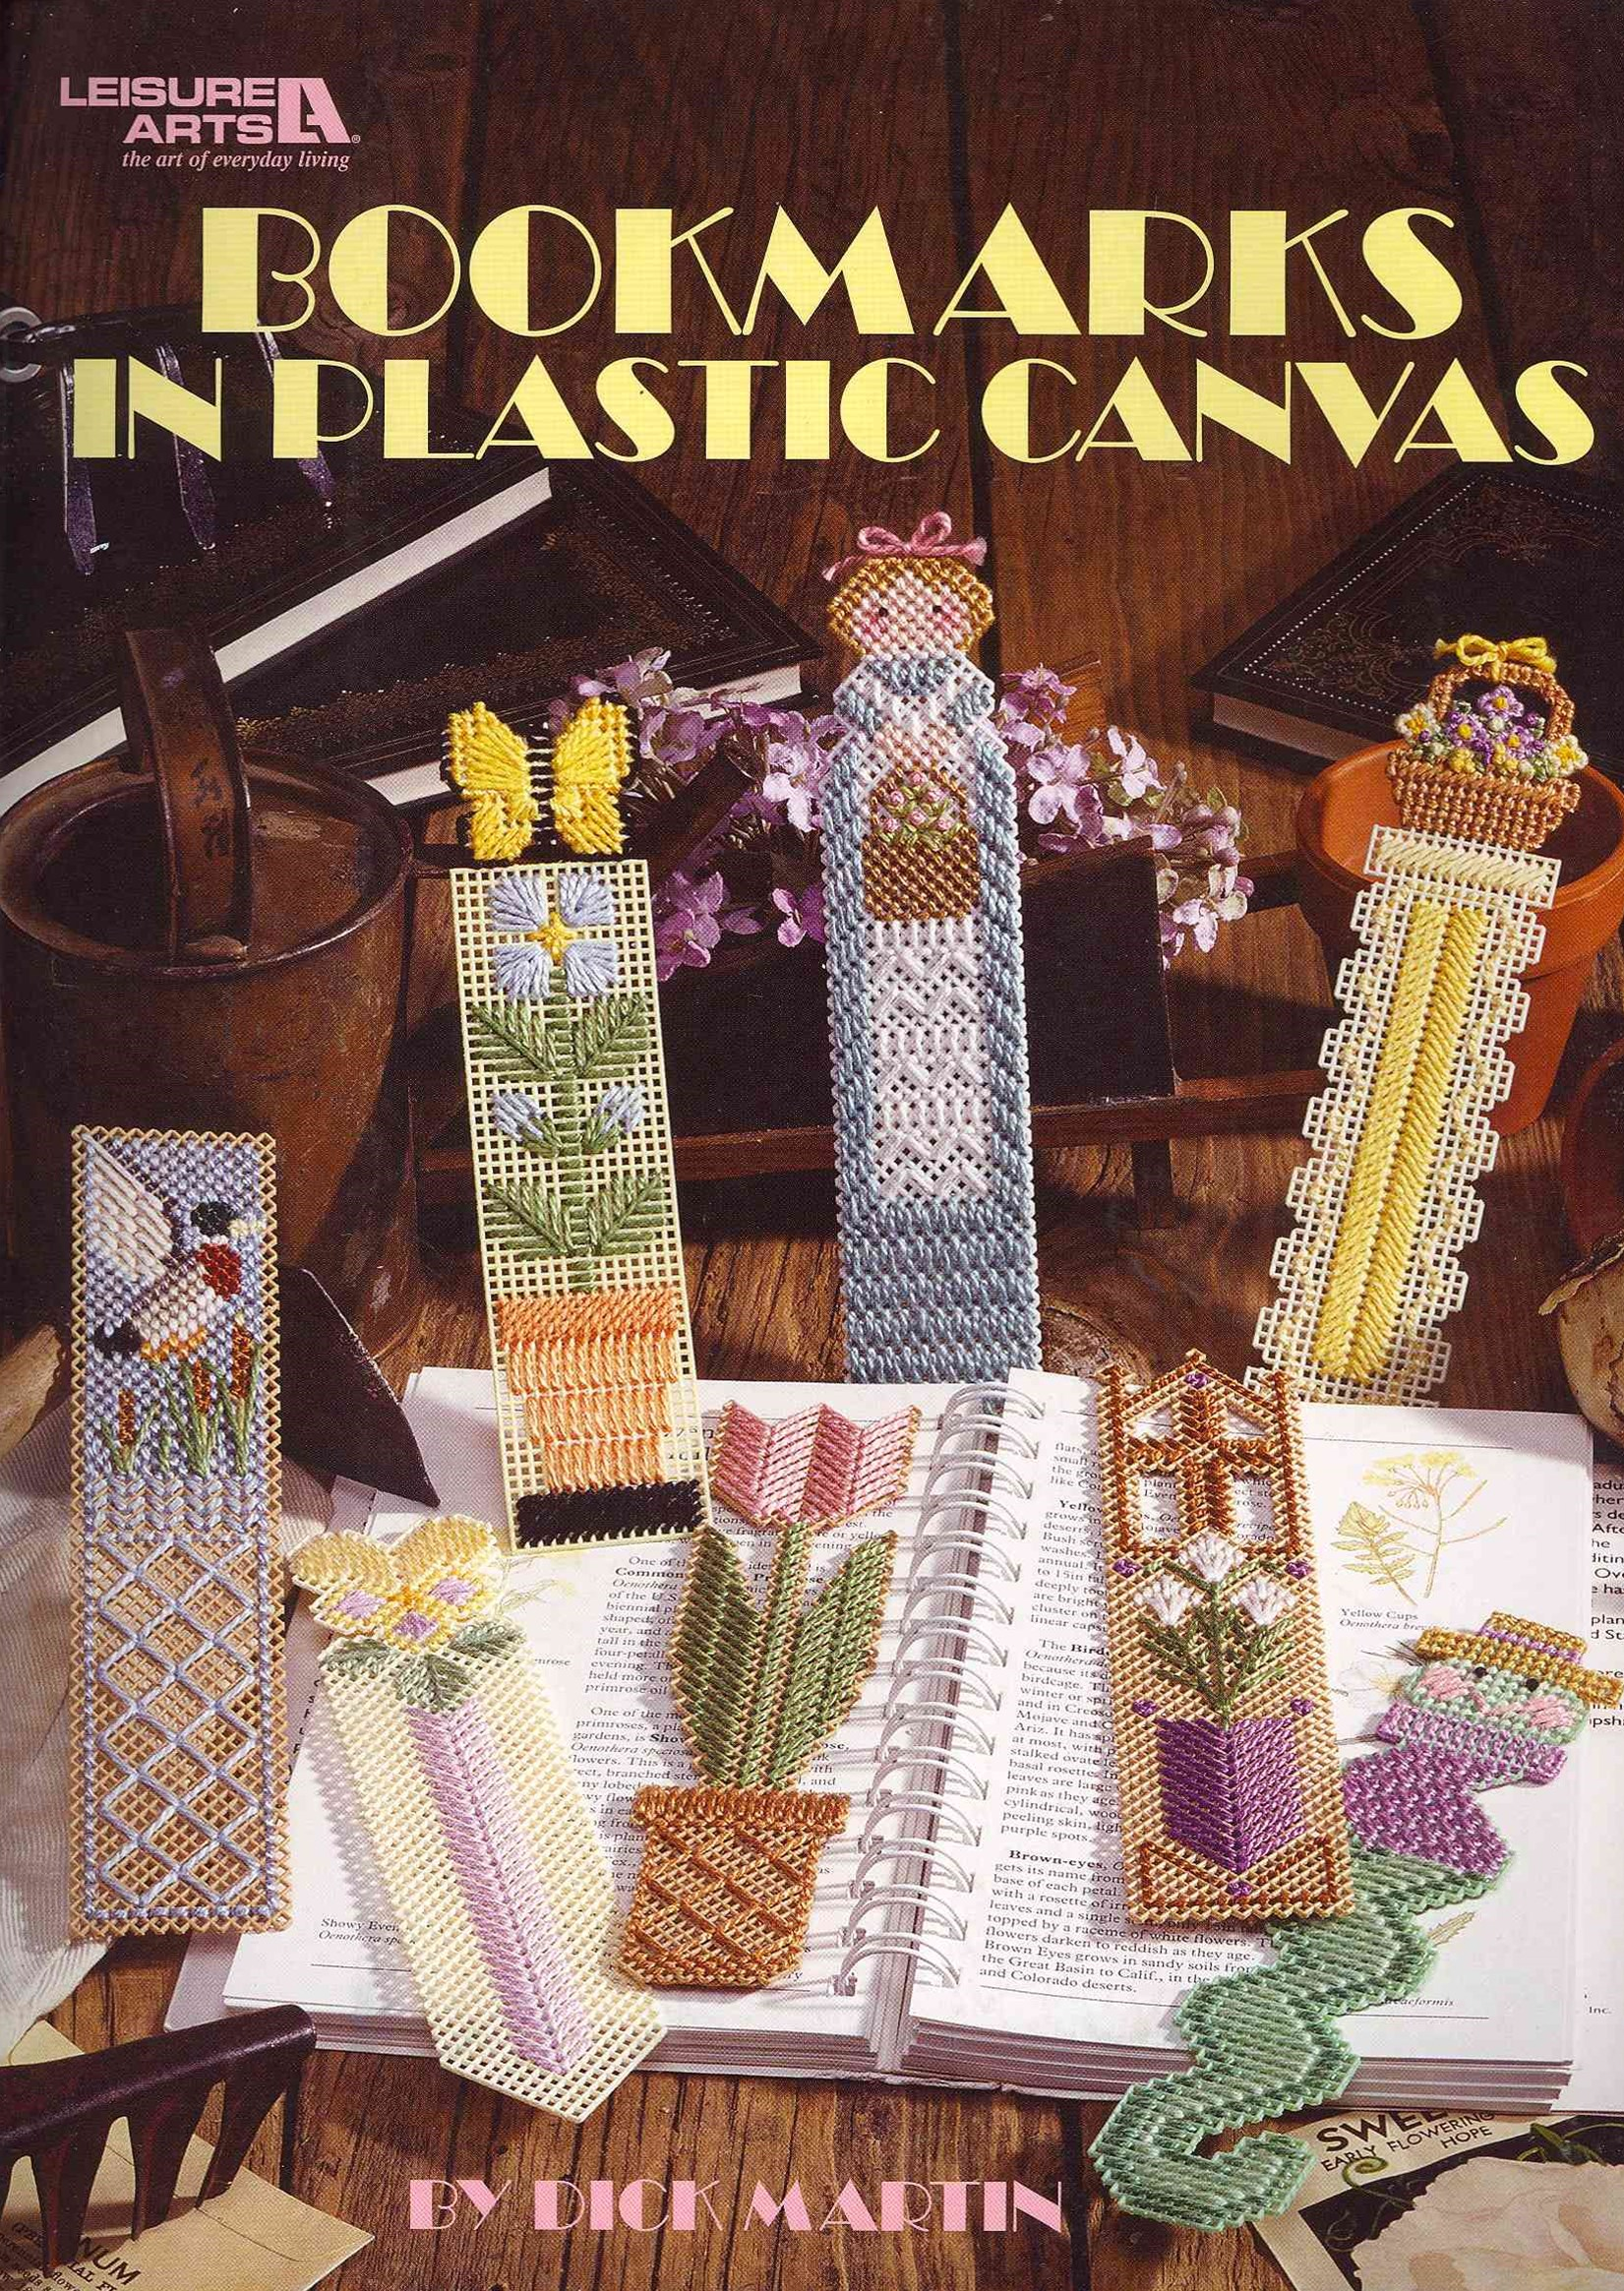 Bookmarks in Plastic Canvas